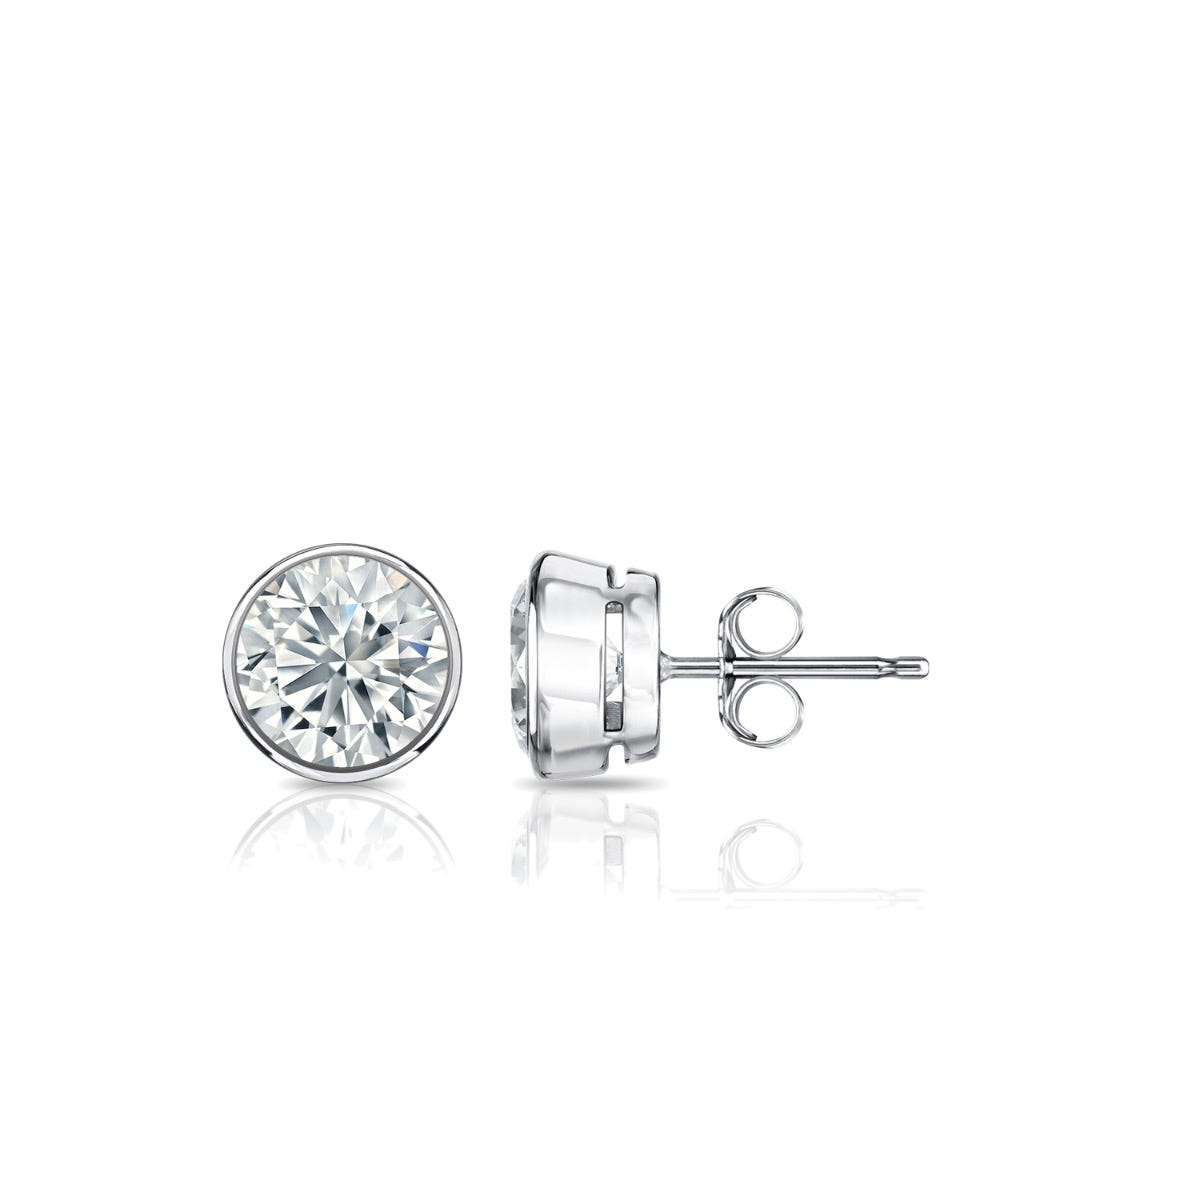 Diamond Round Bezel-Set 5/8ctw. Solitaire Stud (IJ-SI1) Earrings in 18K White Gold